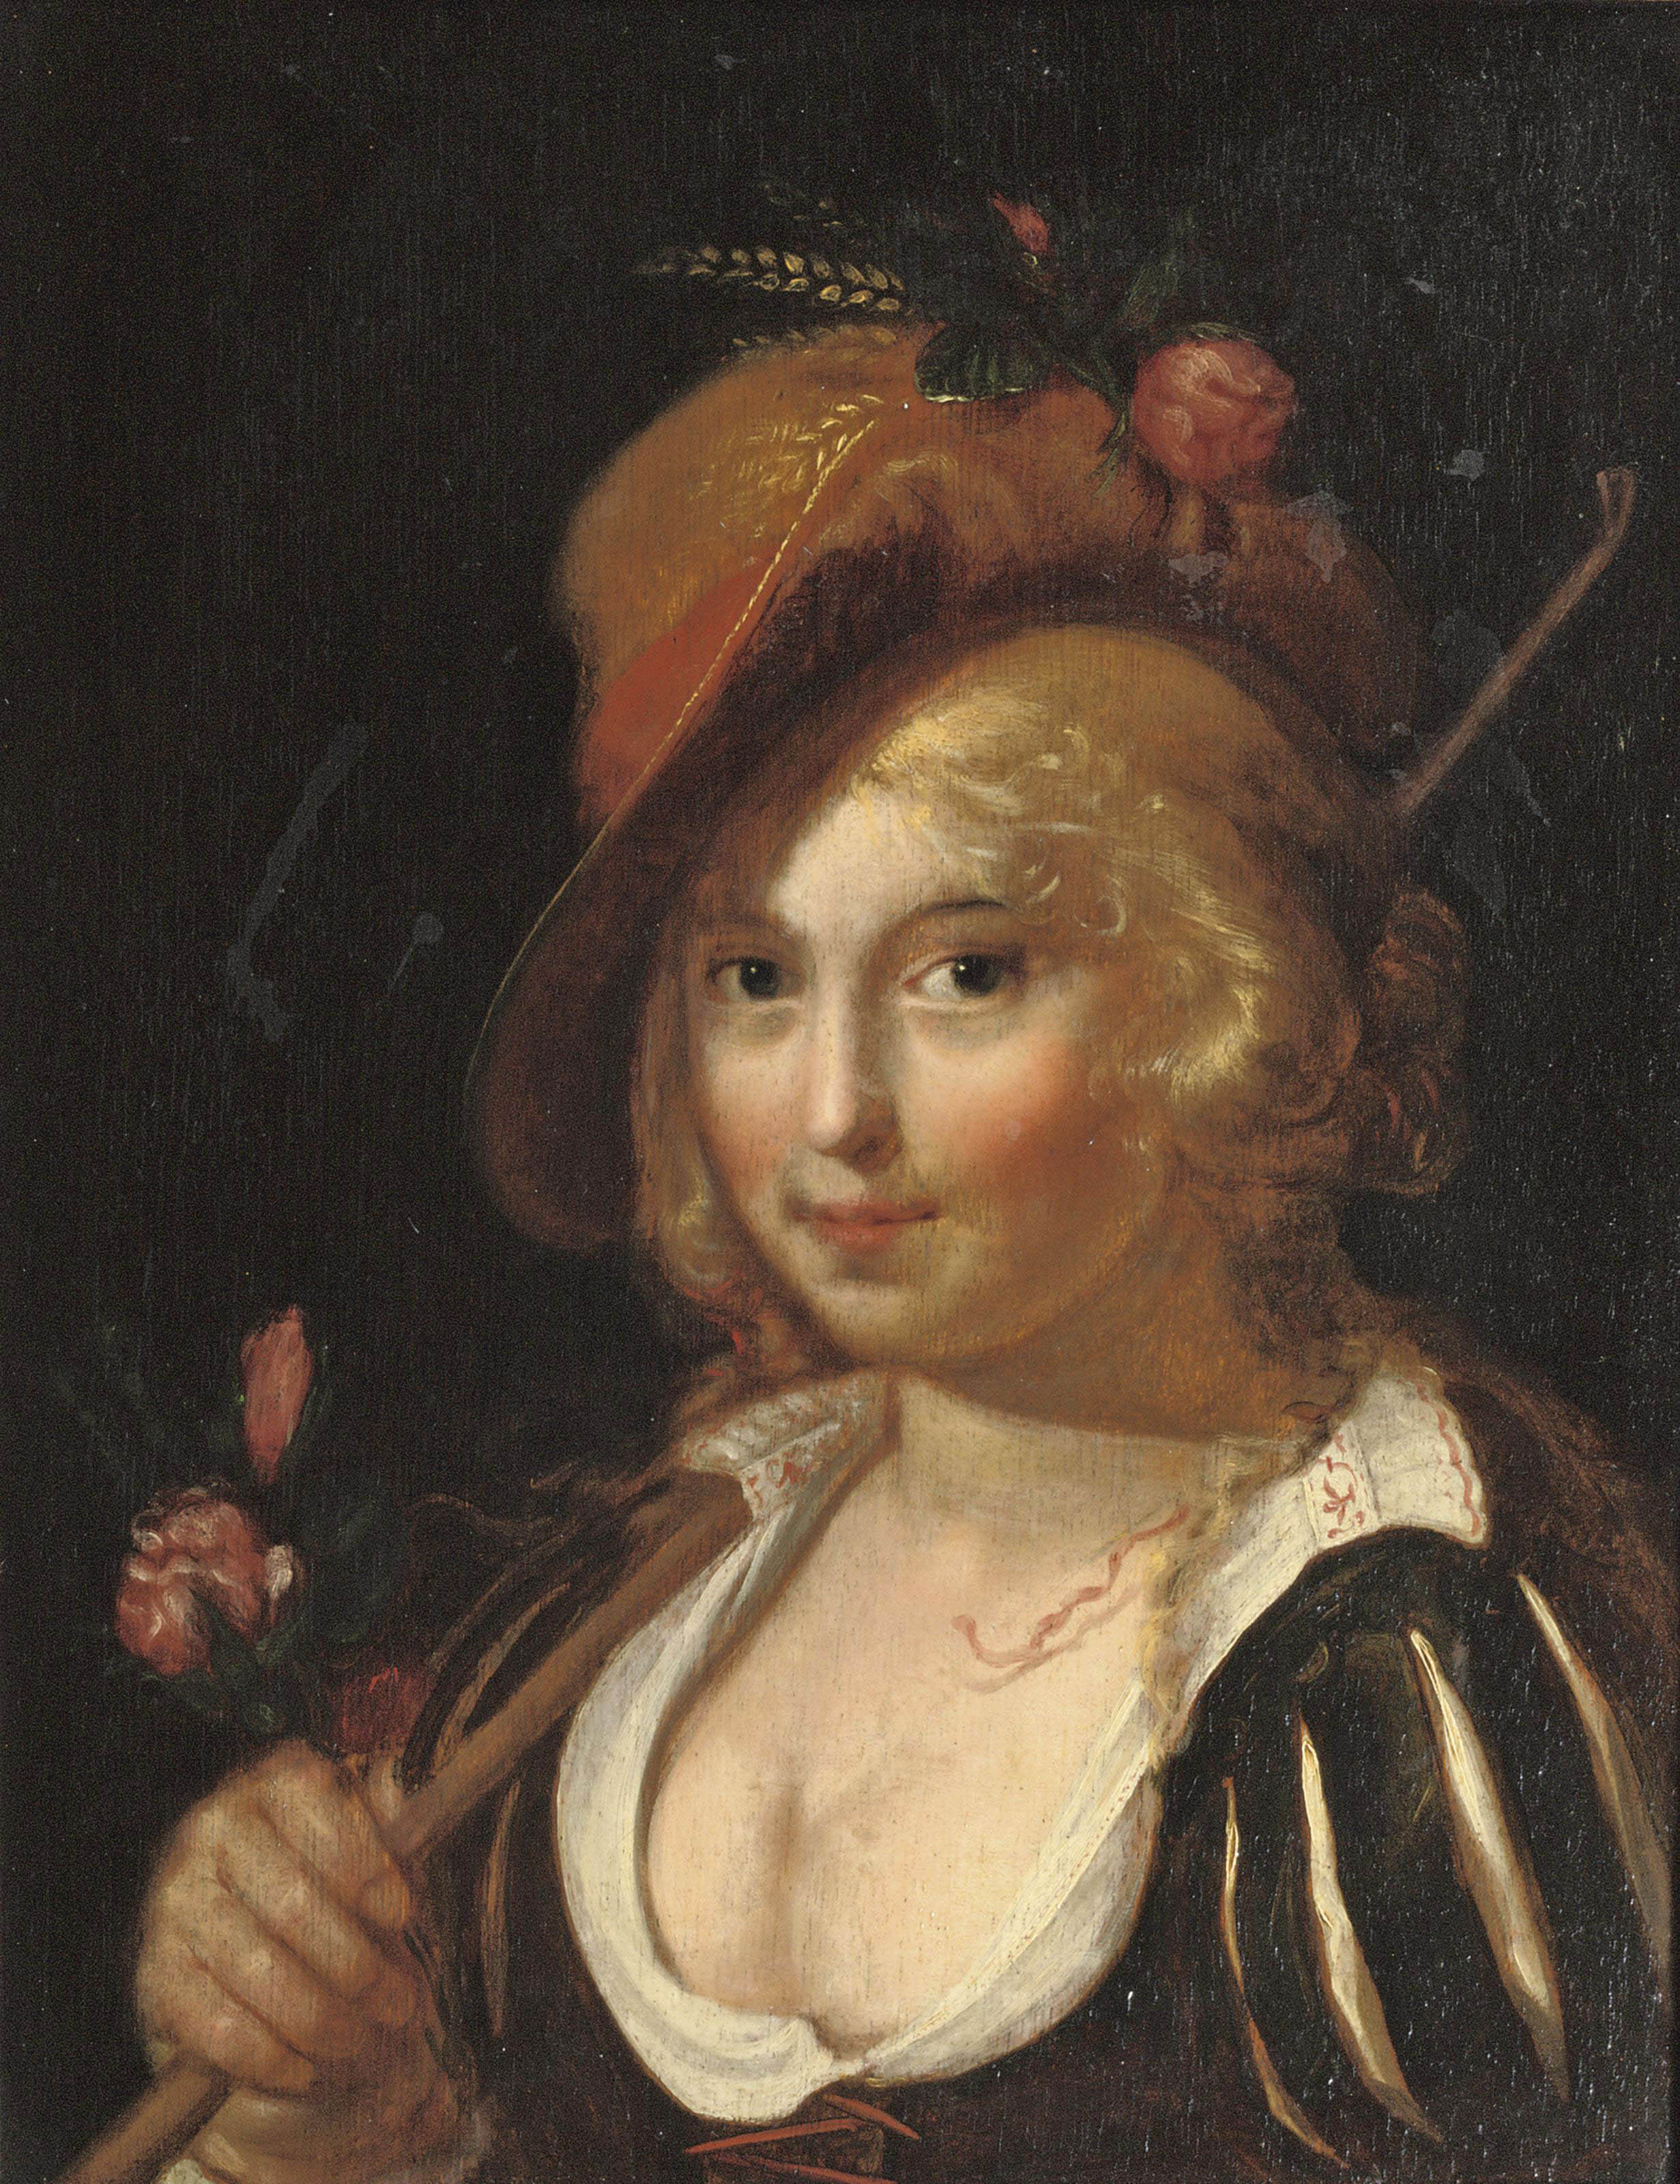 A young shepherdess holding a staff and pink roses in her hand